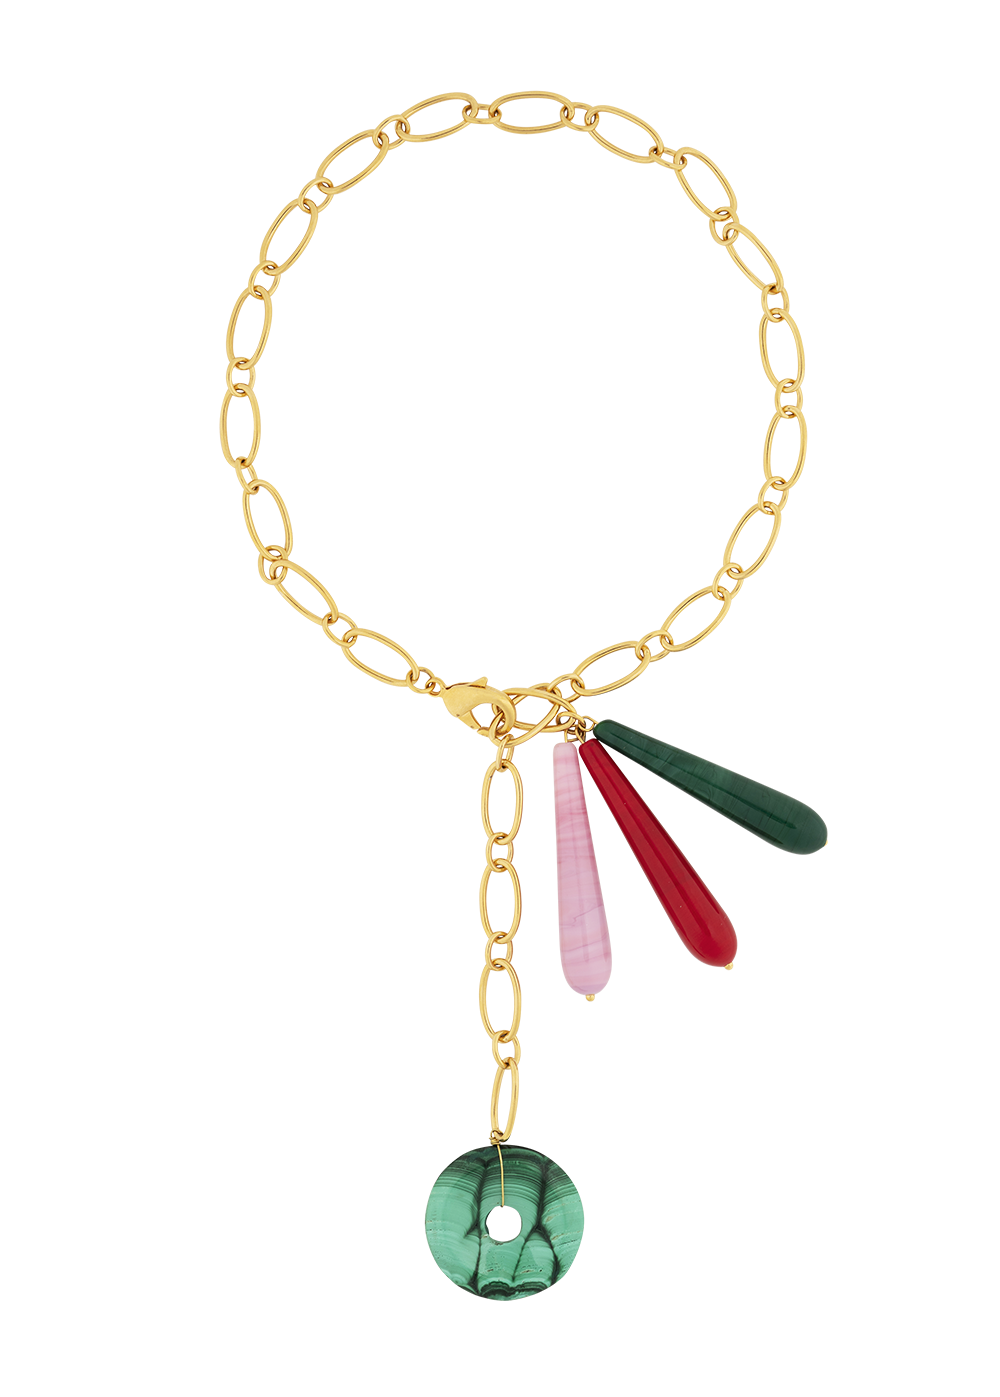 Tango necklace by Timeless Pearly